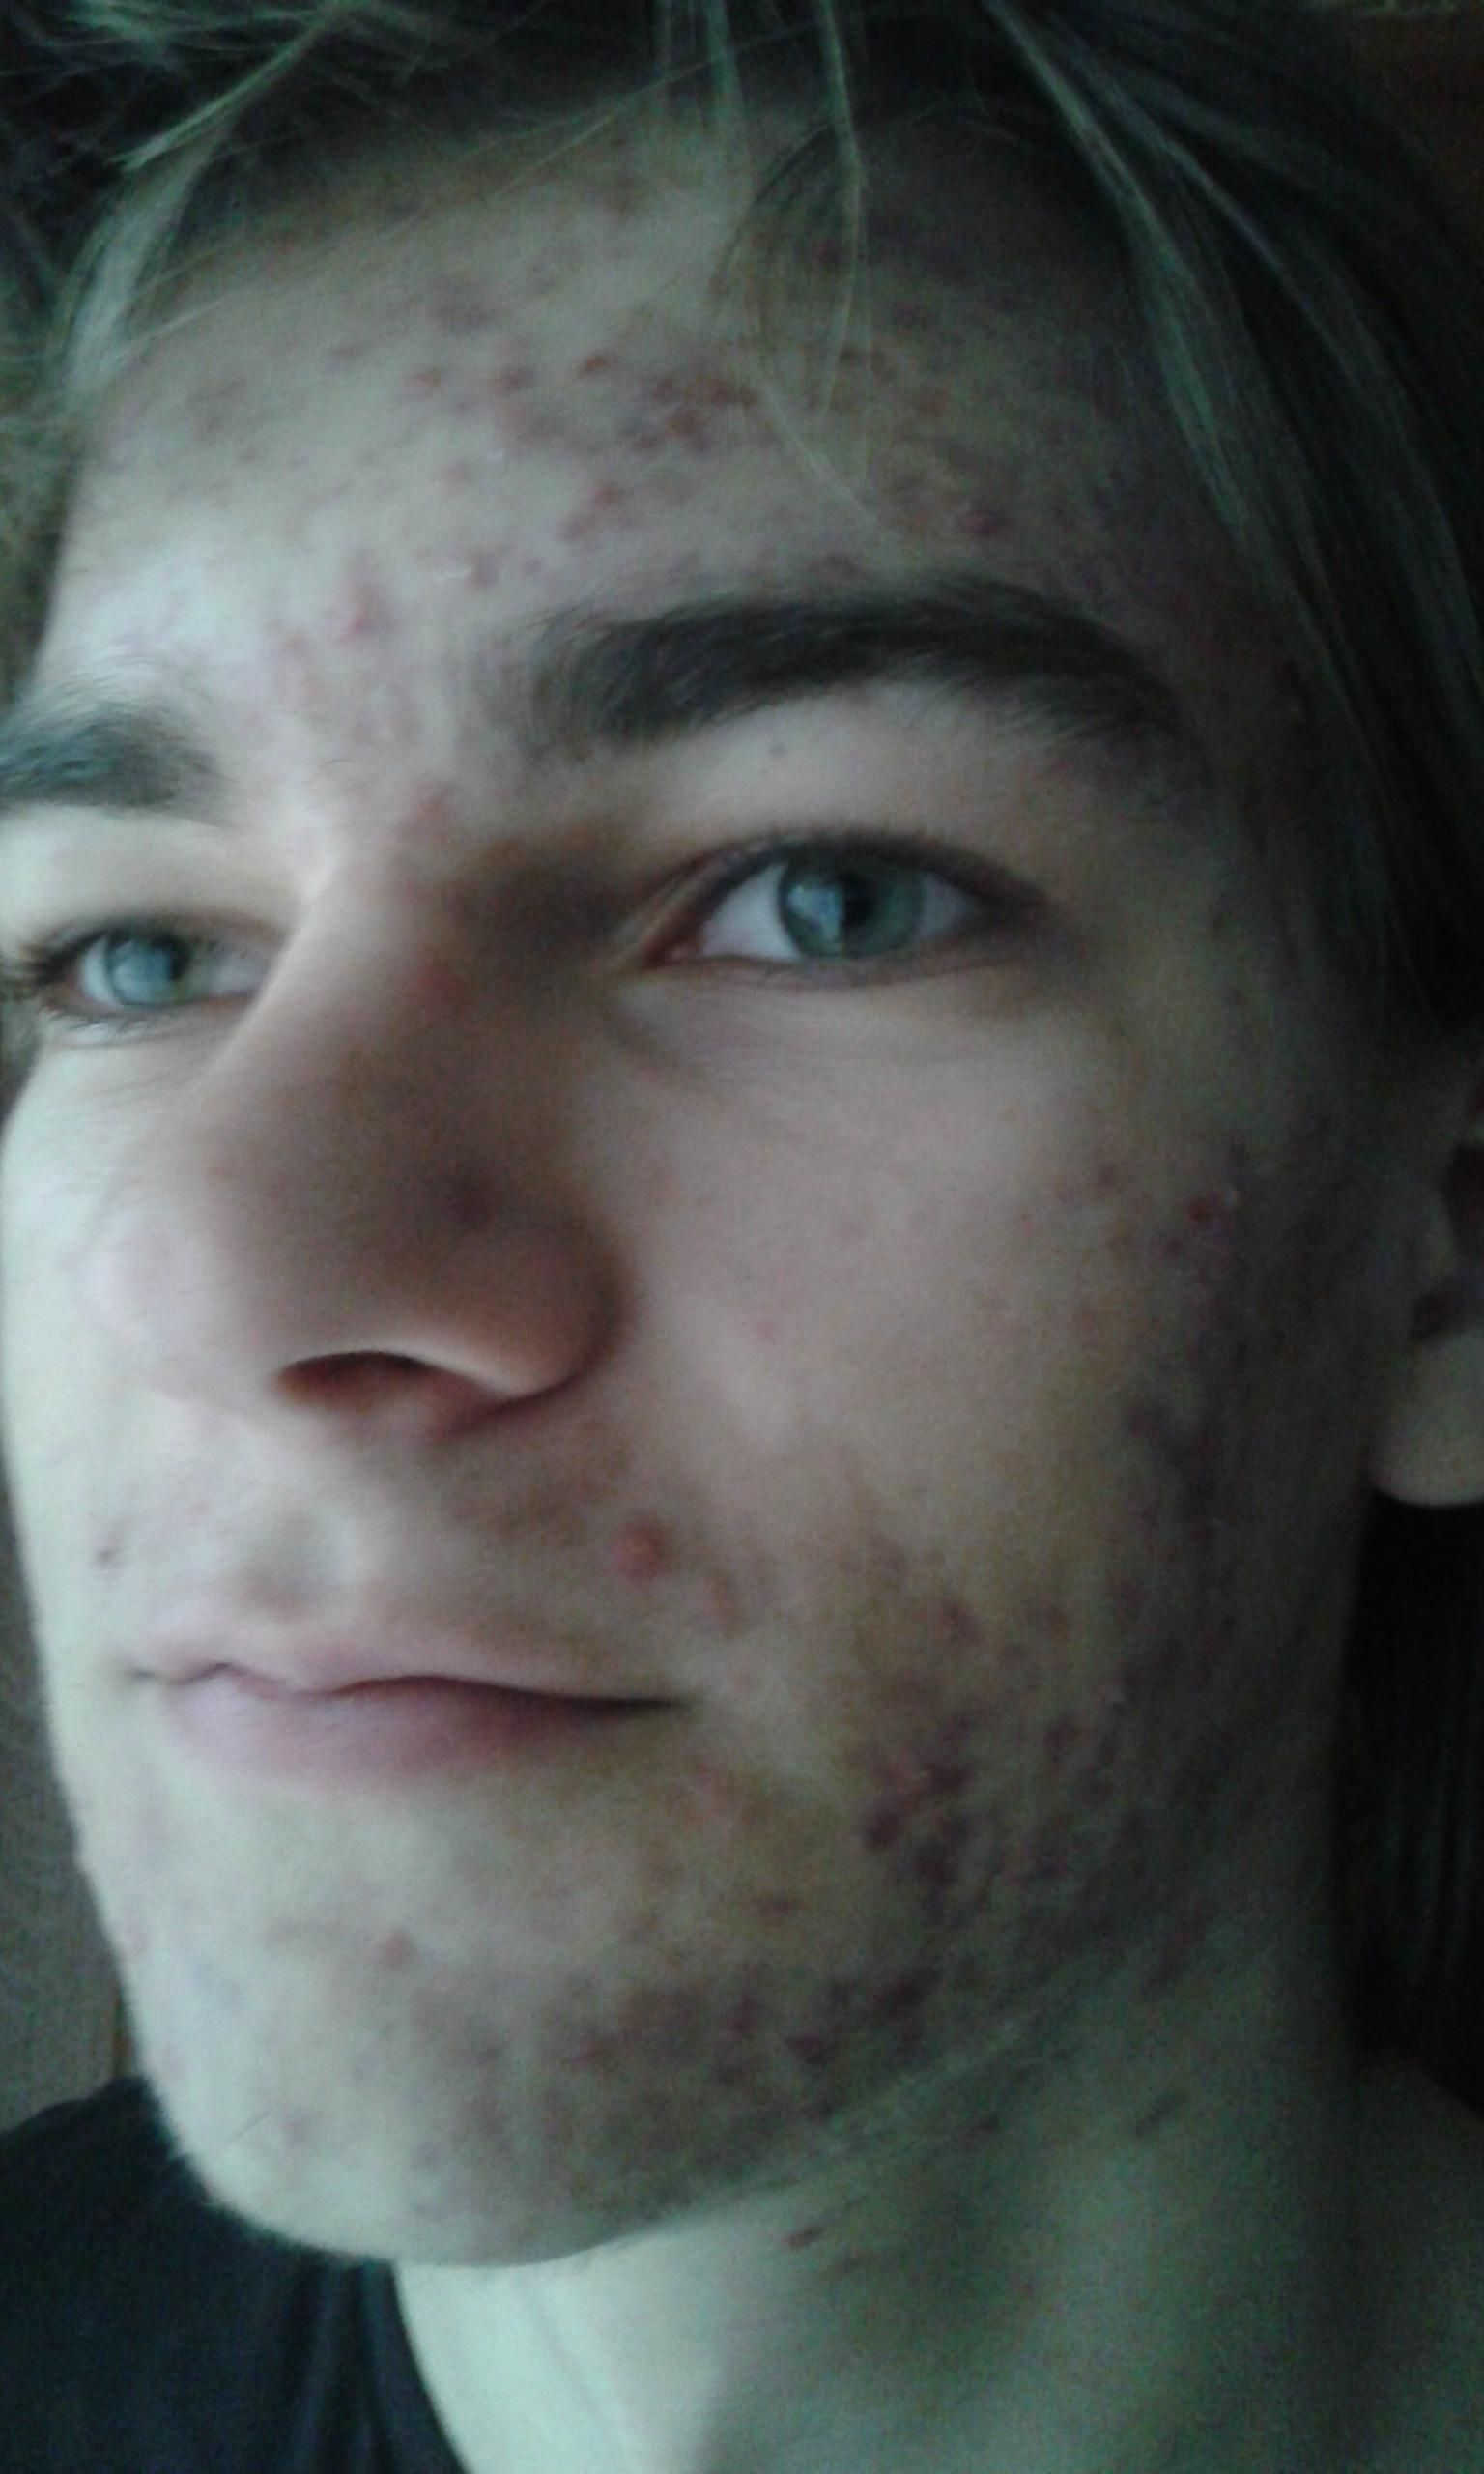 [Acne] I used to have problem with acne.